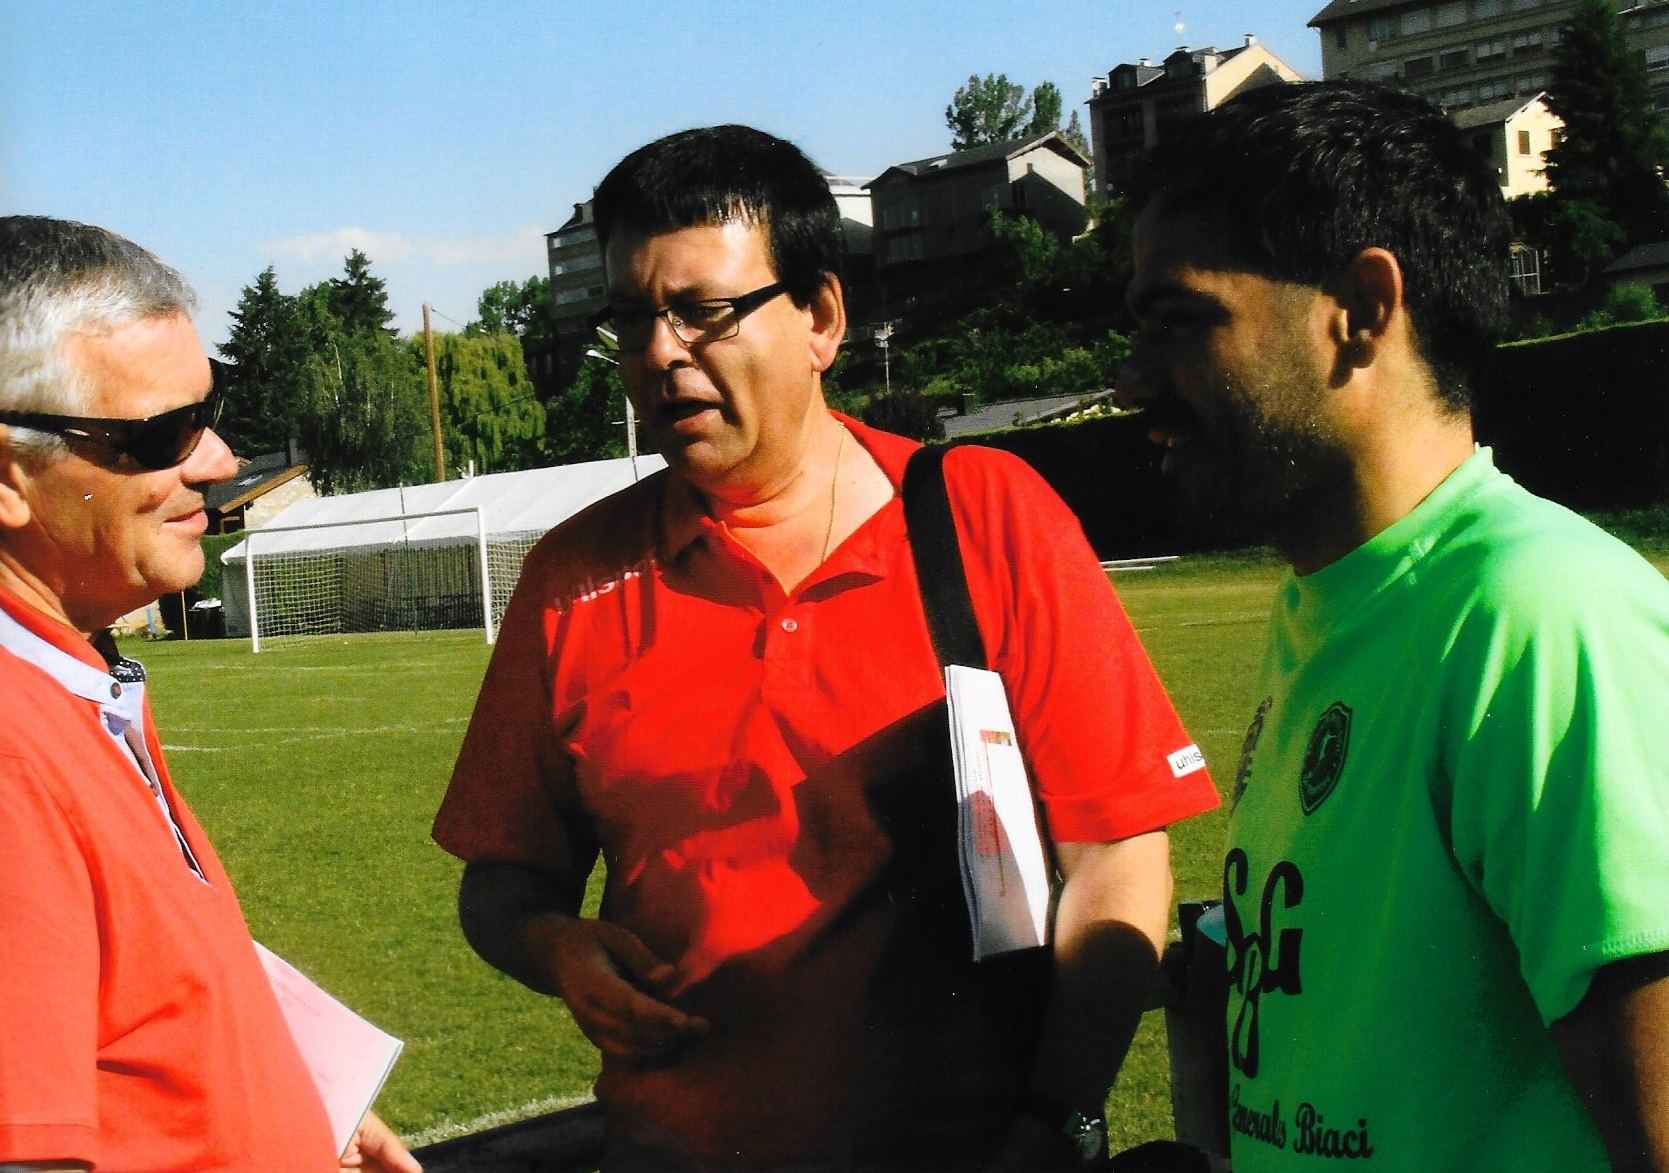 Episodes 1 -3. An Interview with Manuel Romero - Manuel Romero was head of scouting for Real Madrid in Catalonia, Spain. He has discovered and scouted hundreds of youth players who have reached professionalism in La Liga and other elite leagues. Some of the people he discovered include Kiko Casillas (Real Madrid), Dani Jarque (RCD Espanyol), Aleix Vidal (Barcelona FC), and Mariano Diaz (Olympique de Lyon). Romero talks about what he looks for in players, and what it takes to become an elite player.EPISODE 1-The Spanish Model: Why Are They So Good?! discussing the indicators that make Spain an ideal player development environment, s well as an elite league in all tiers at the senior level.EPISODE 2-ELITE SCOUTING: GOODWILL HUNTING discussing the indicators elite scouts utilize to sign future stars.EPISODE 3-CERDANYA CUP: Summer Stage for talent discussing international event that serves as staging for players and a source for scouts.